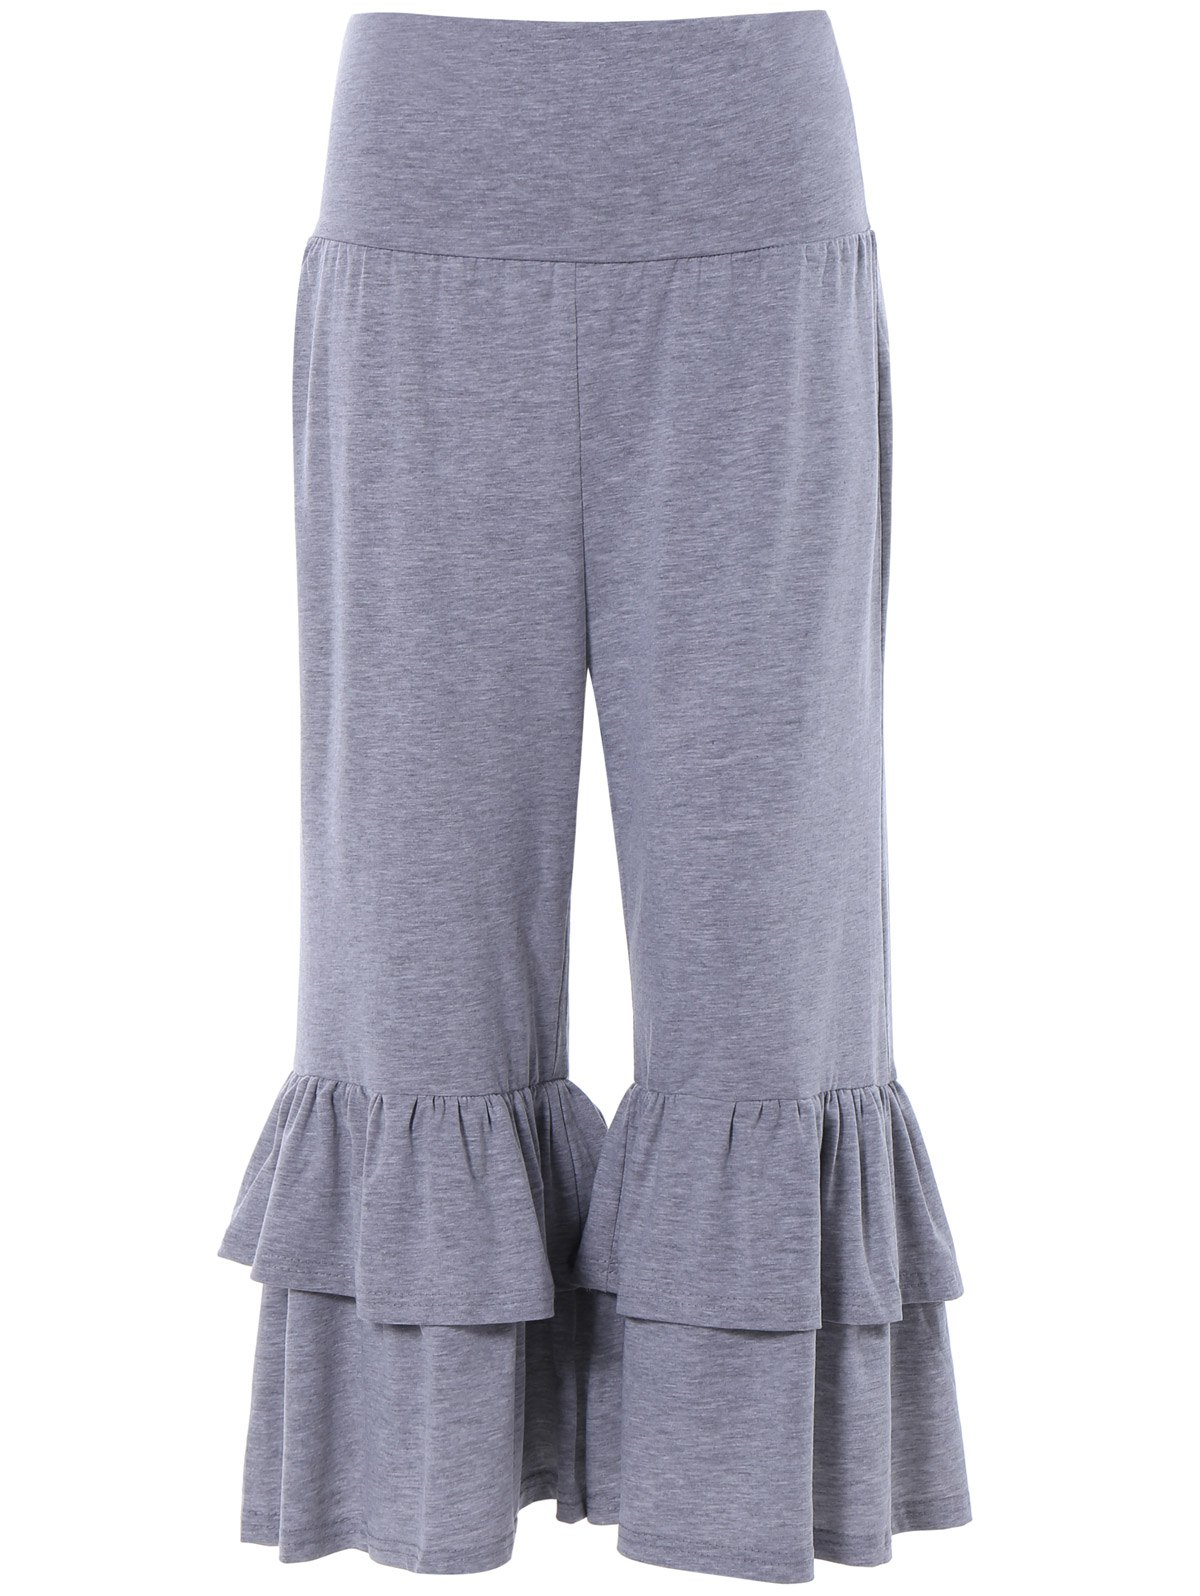 Tiered Ruffled Capris